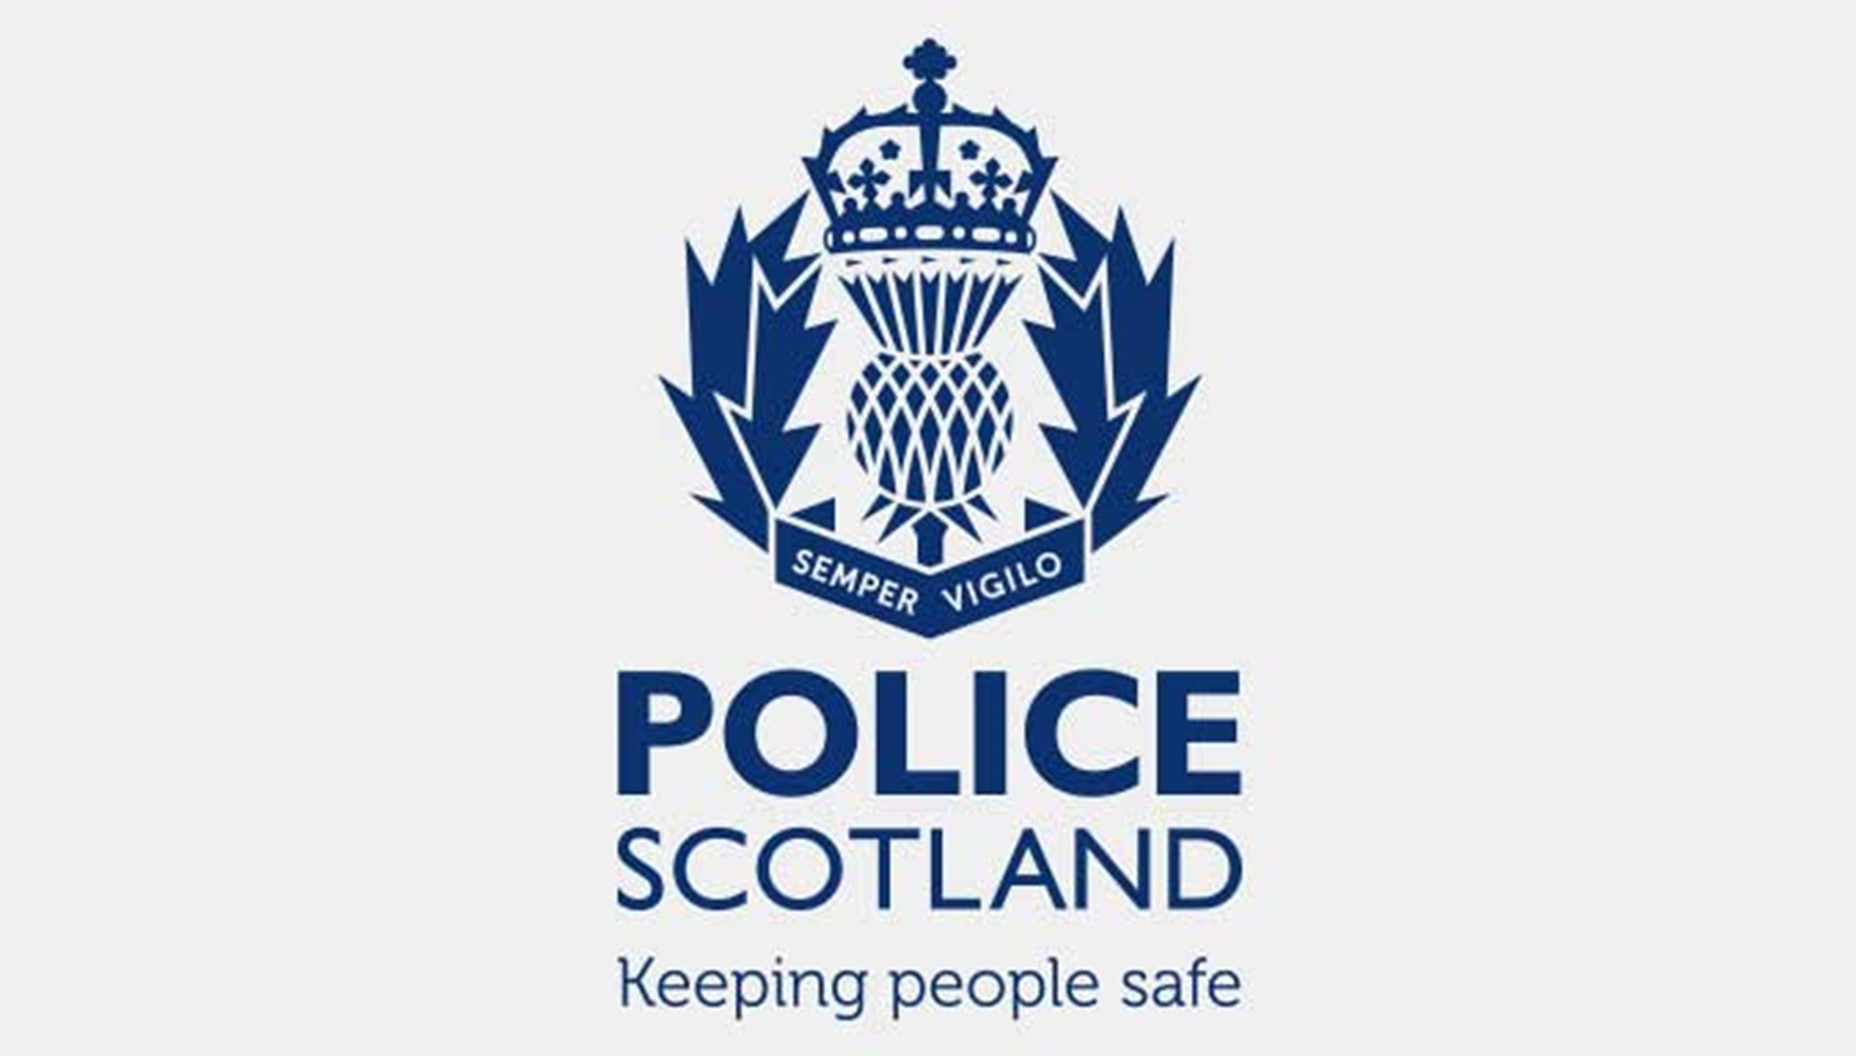 Police Scotland Face Court Action For Racist, Anti-Sematic WhatsApp Messages